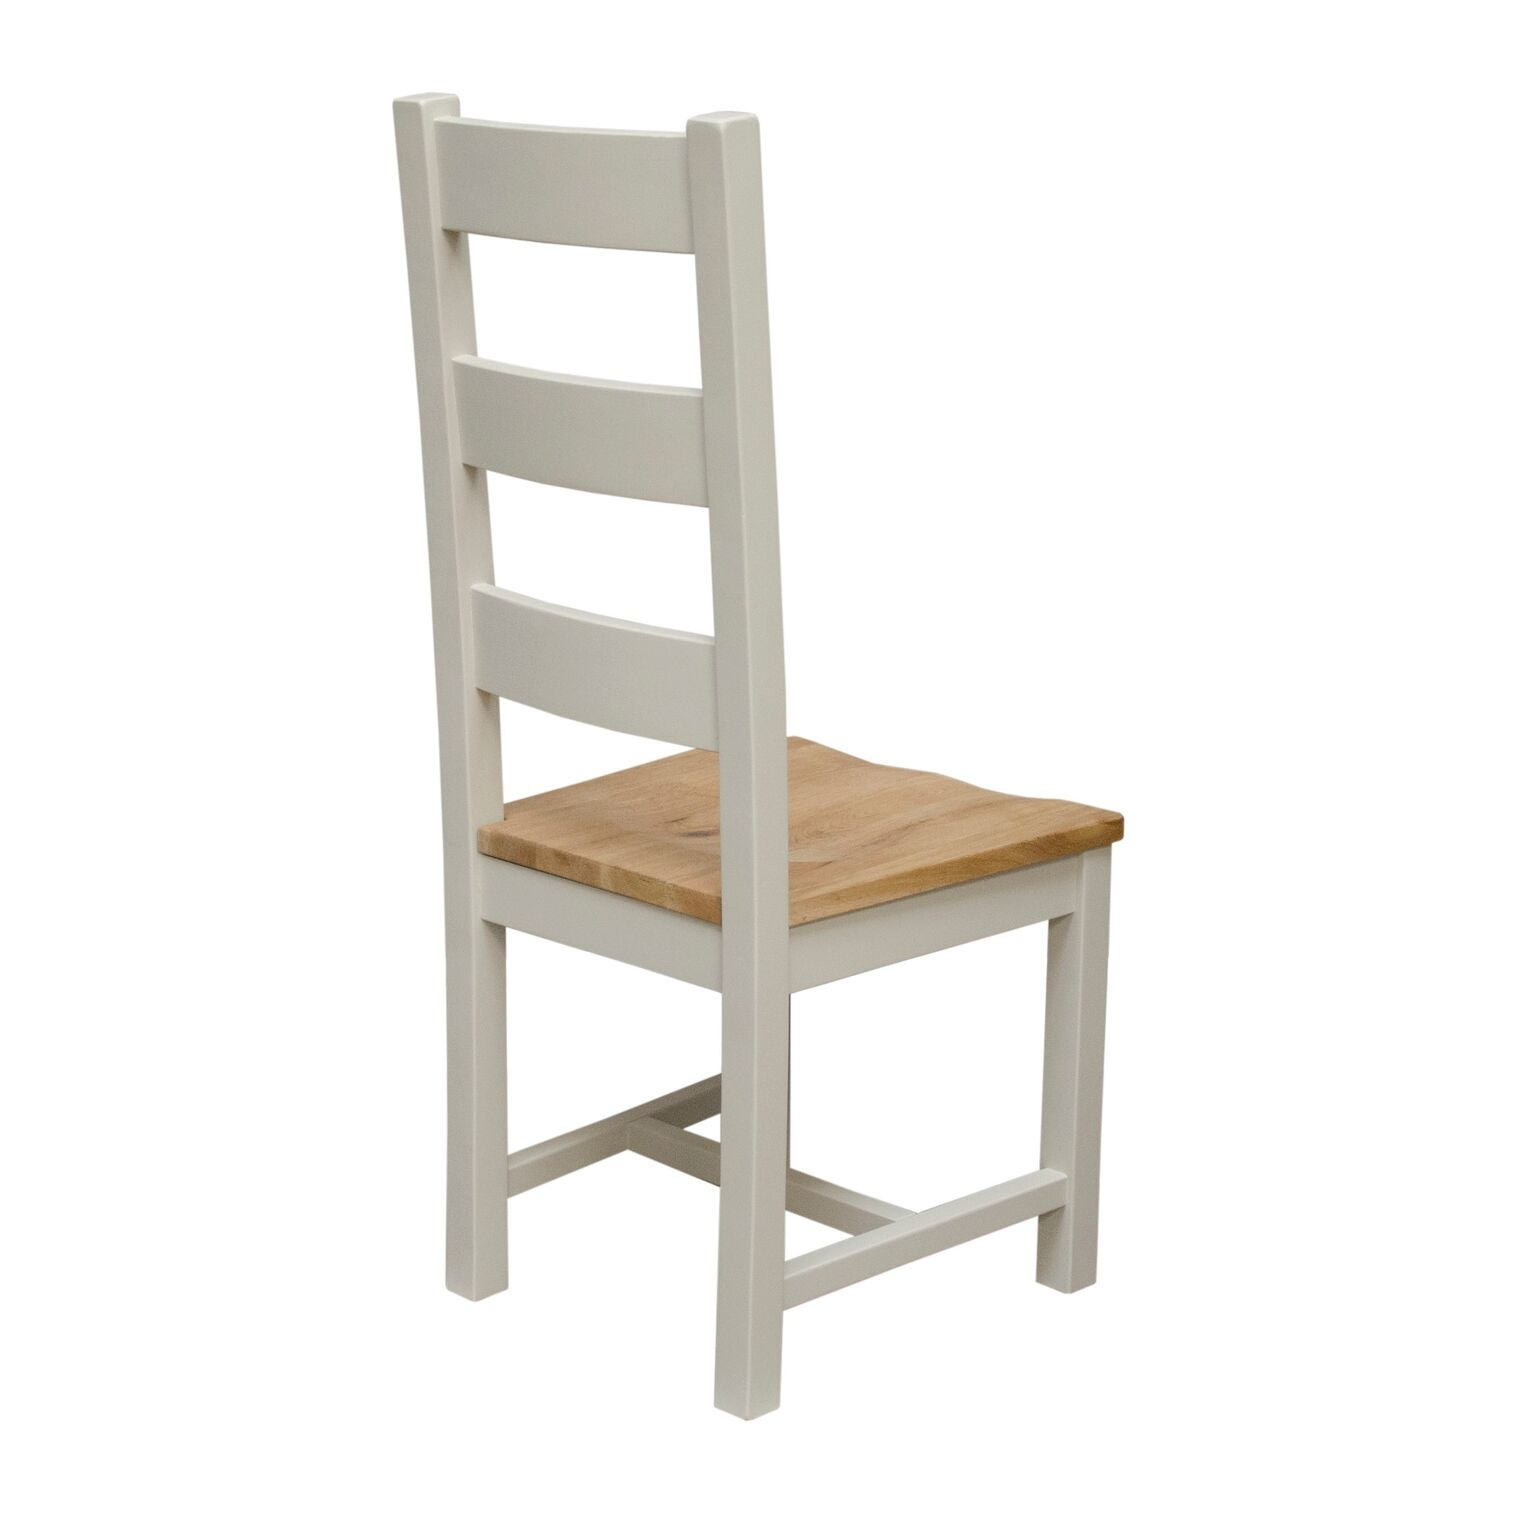 Painted Deluxe Ladder Back Dining Chair - Pair